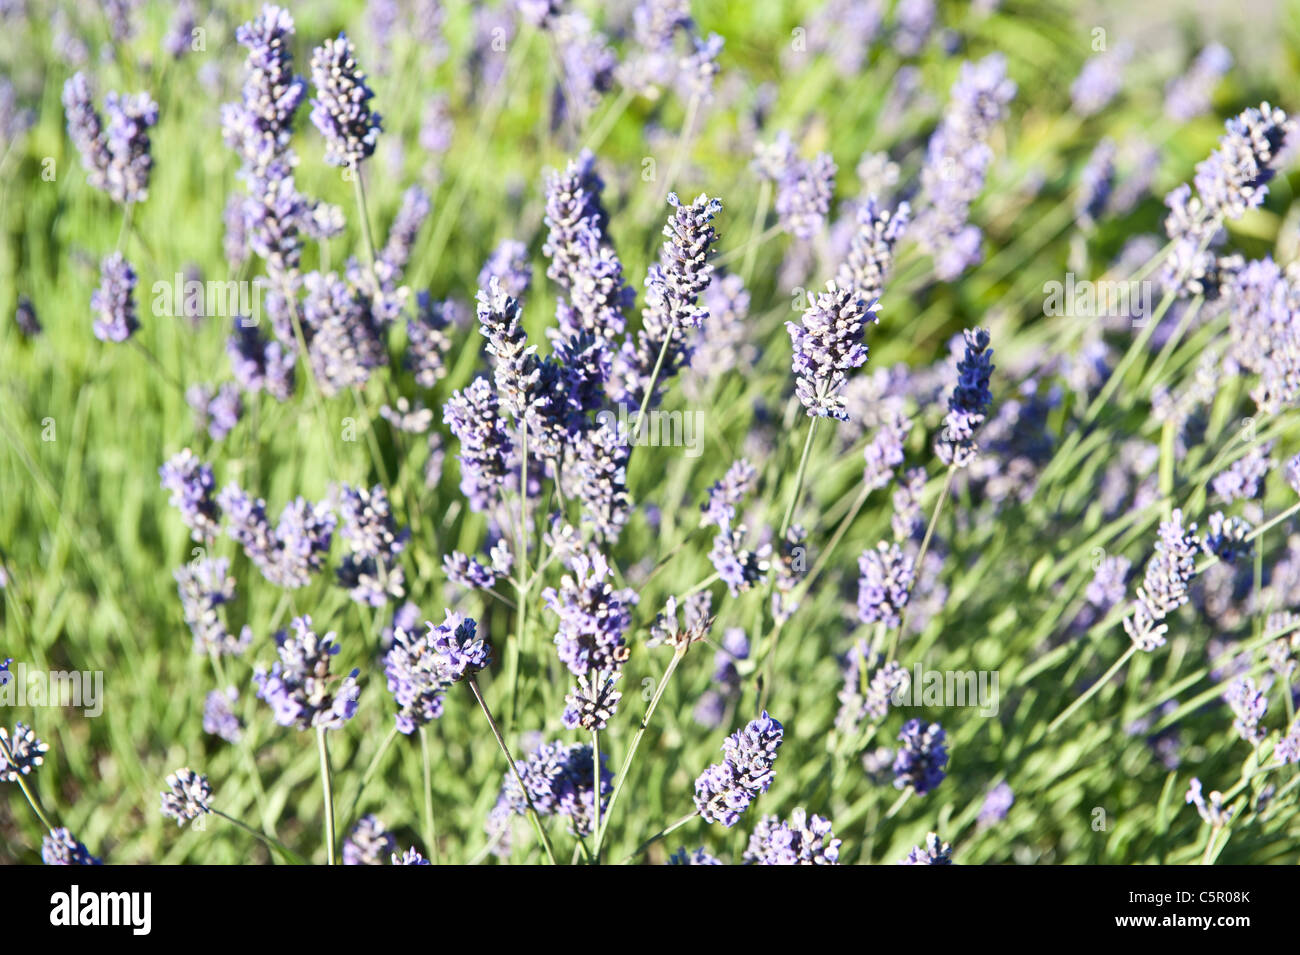 A close-up of thriving Common Heather, or Calluna vulgaris, in the english countryside. - Stock Image